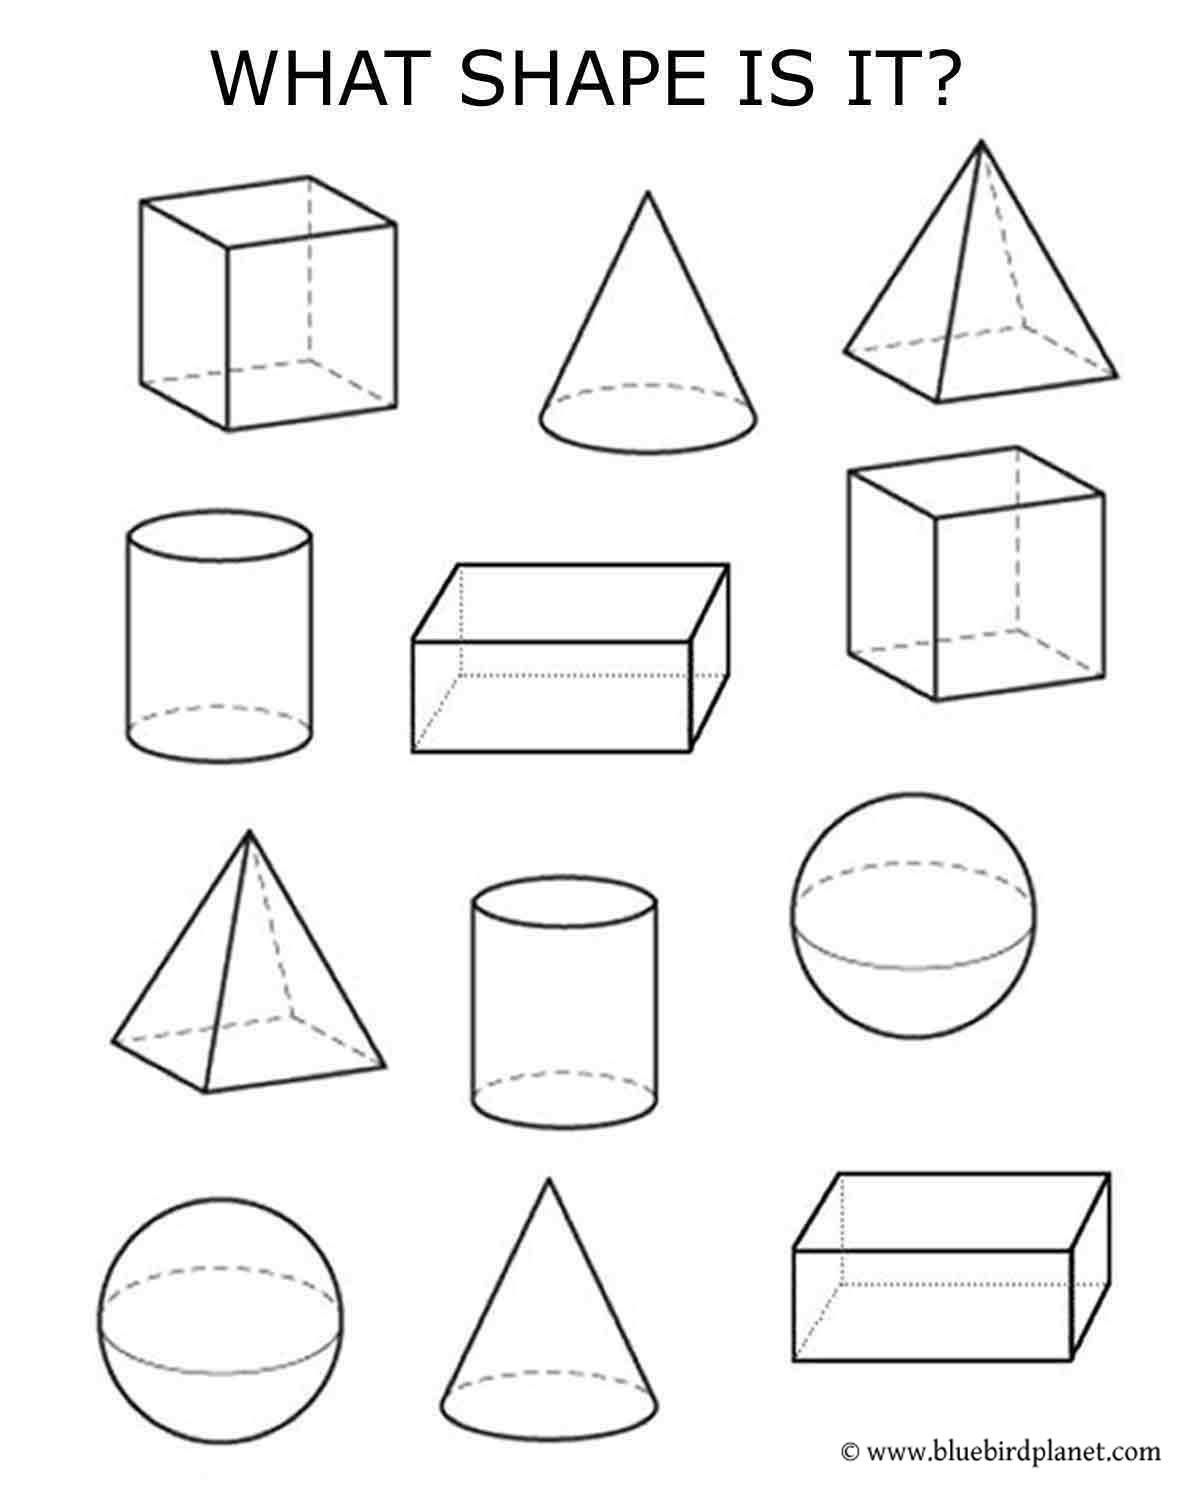 Polygon Worksheets 5th Grade Free Printable Worksheets for Preschool Kindergarten 1st